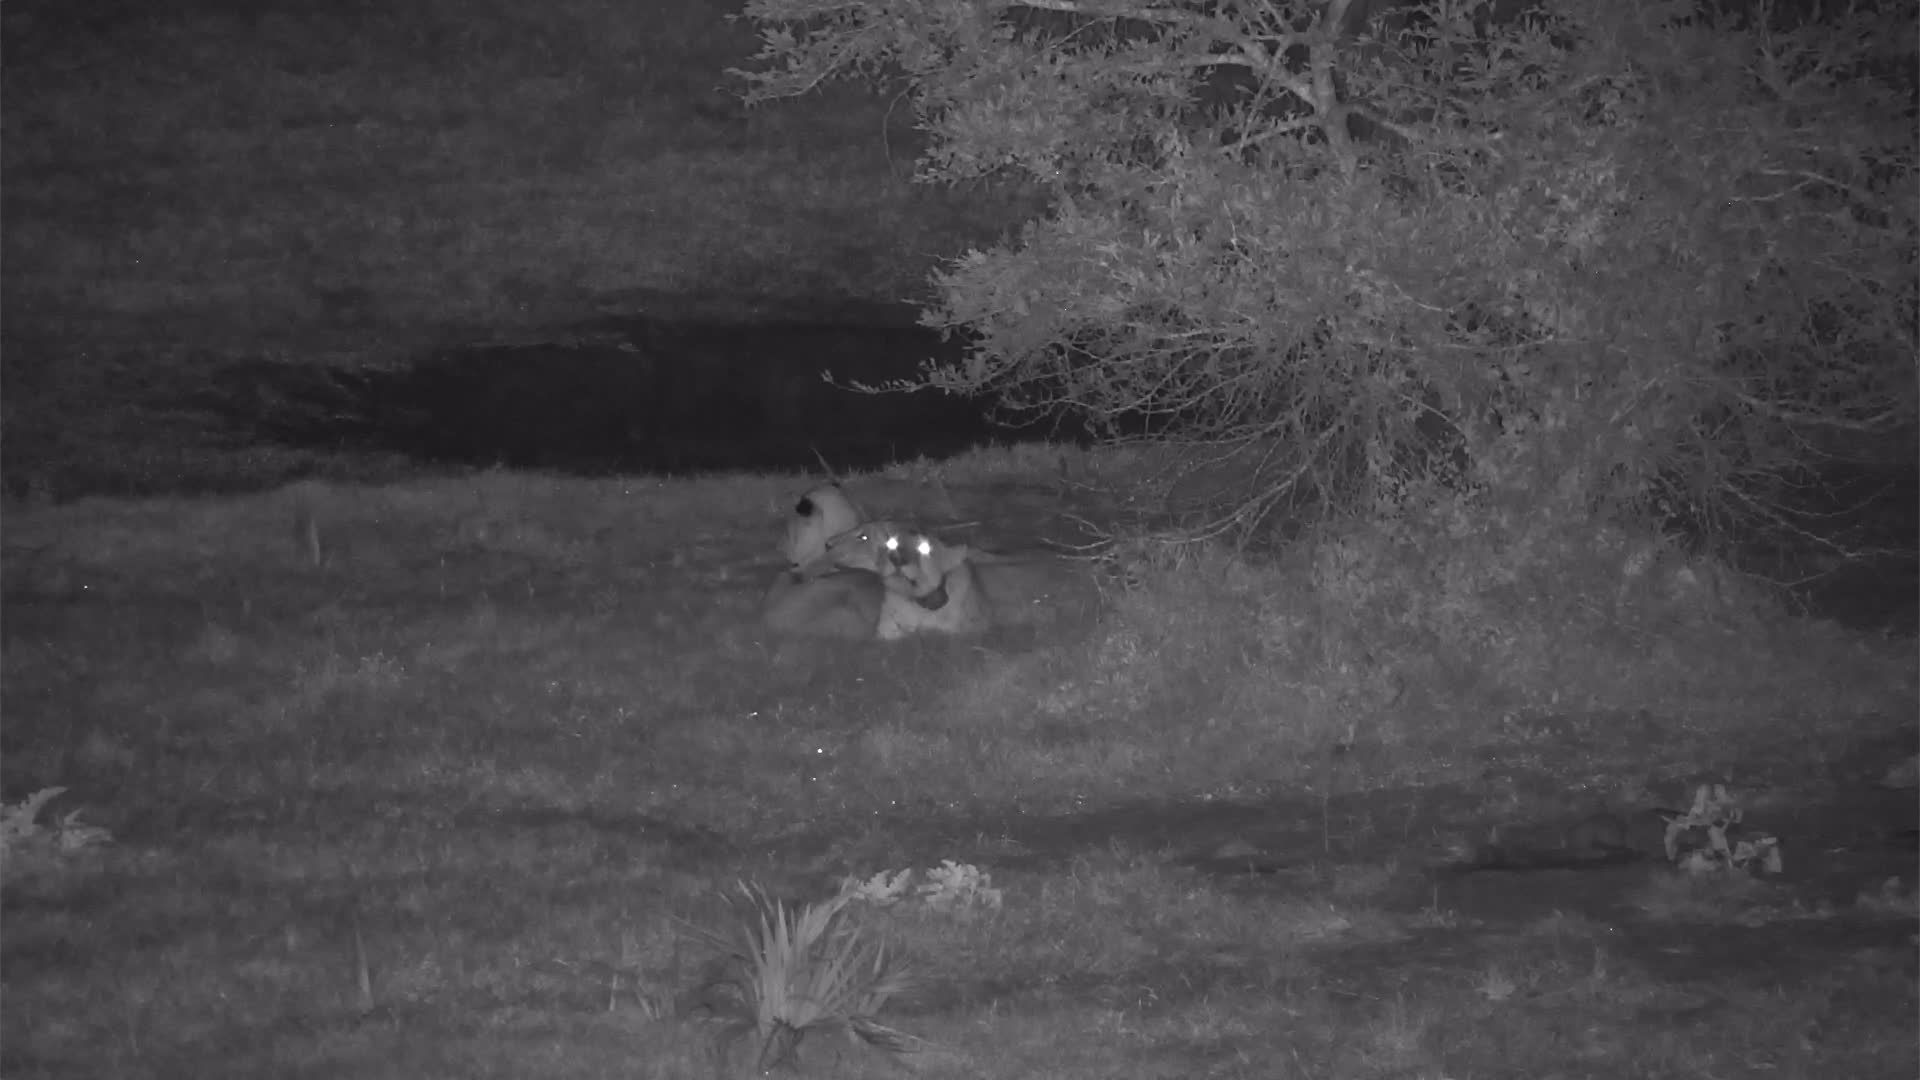 VIDEO: Lions wake up, roar and go back to sleep